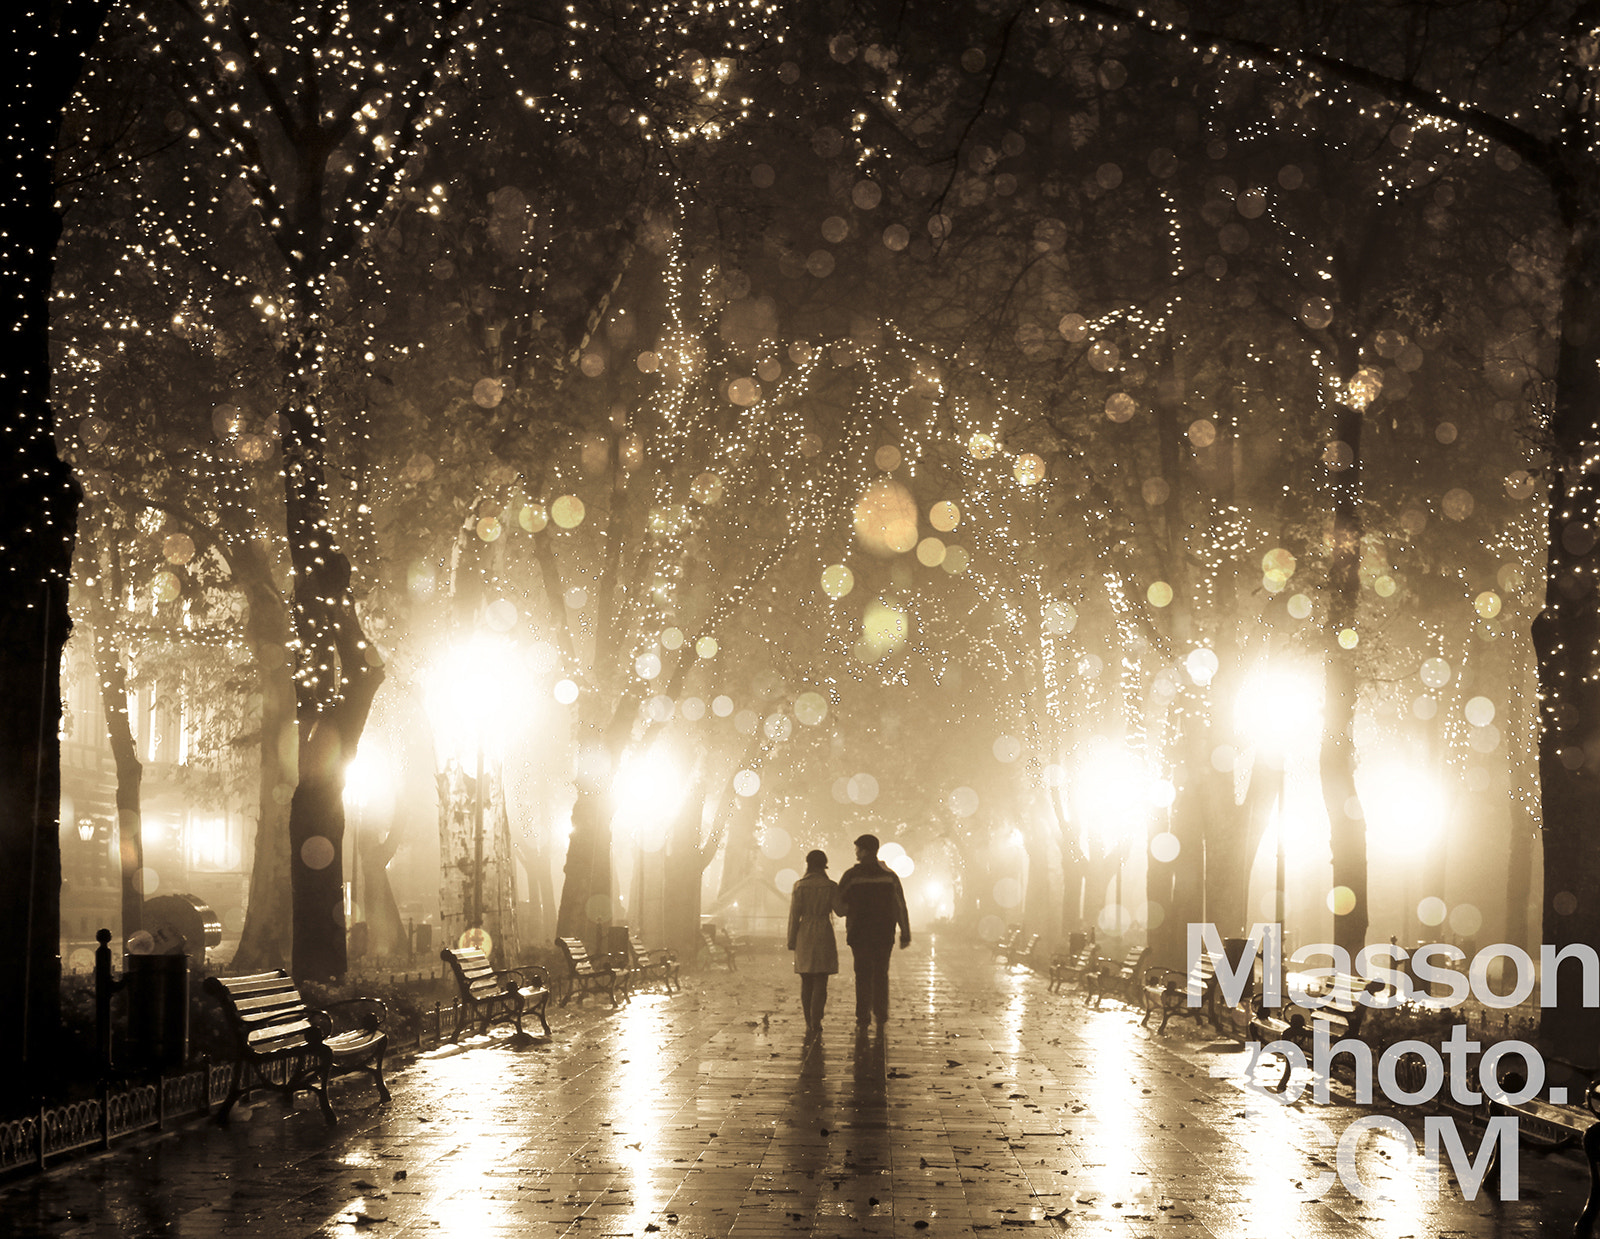 Photograph Couple walking at alley in night lights. Photo in vintage multic by Vladimir Nikulin / Masson on 500px